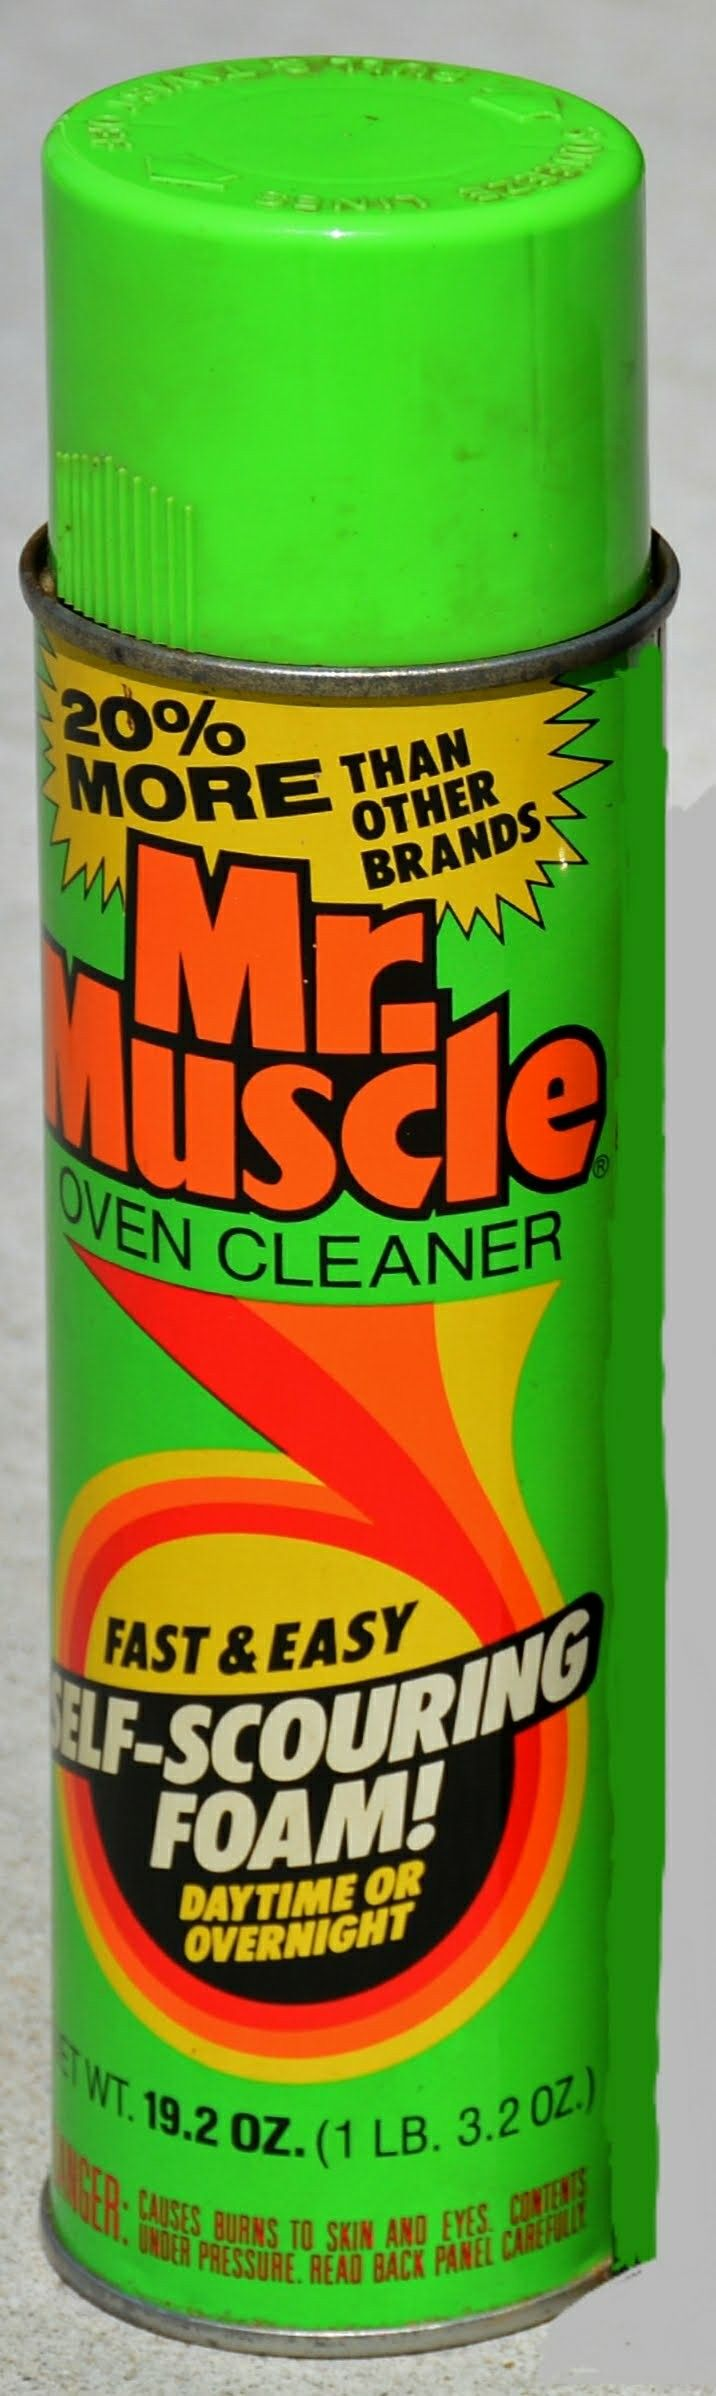 Mr Muscle Oven Cleaner can (1985)